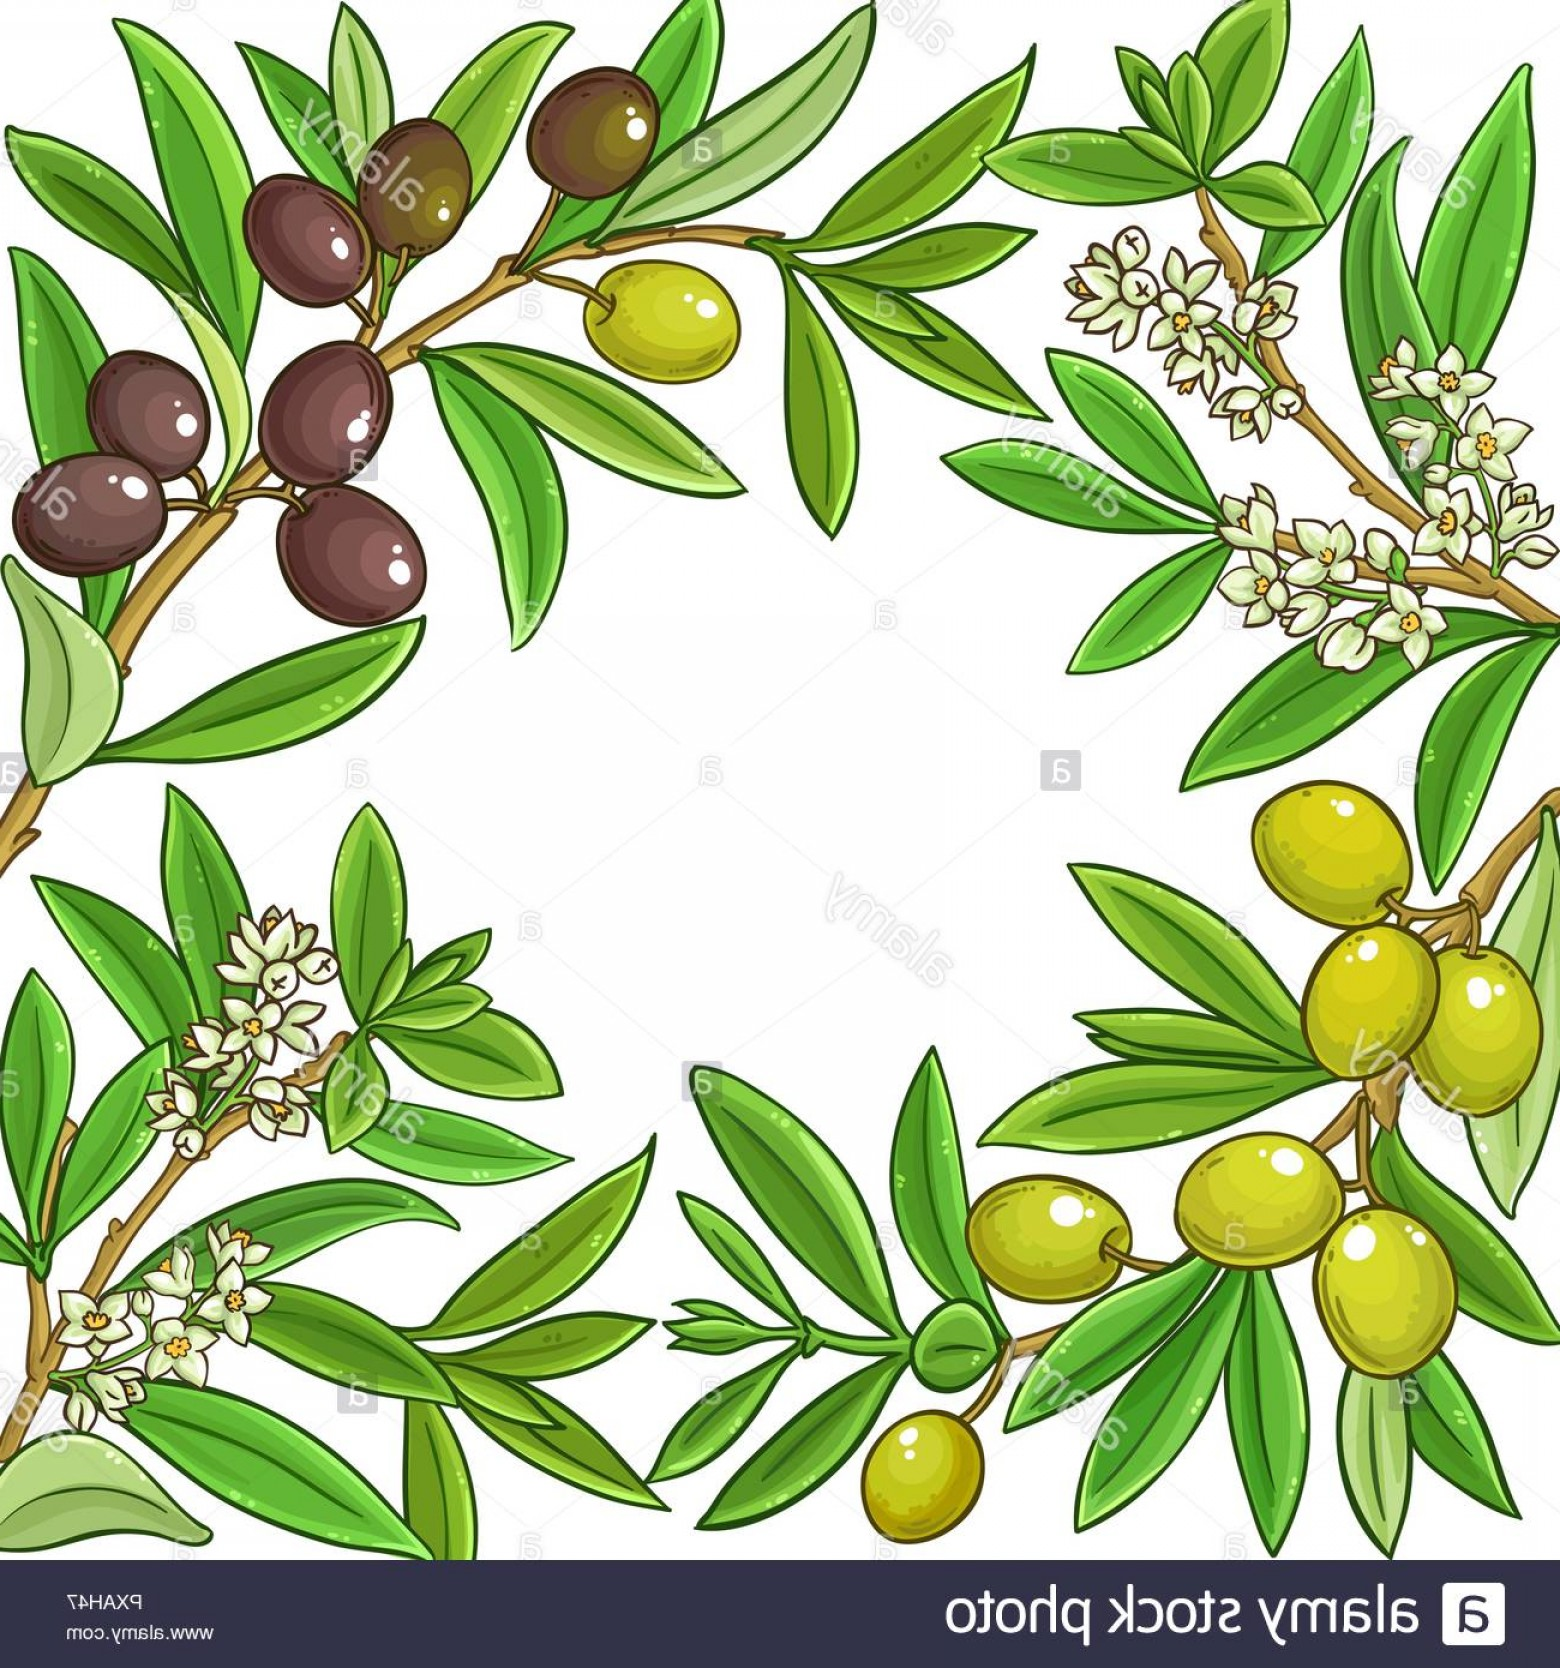 Olive Vector: Olive Vector Frame On White Background Image